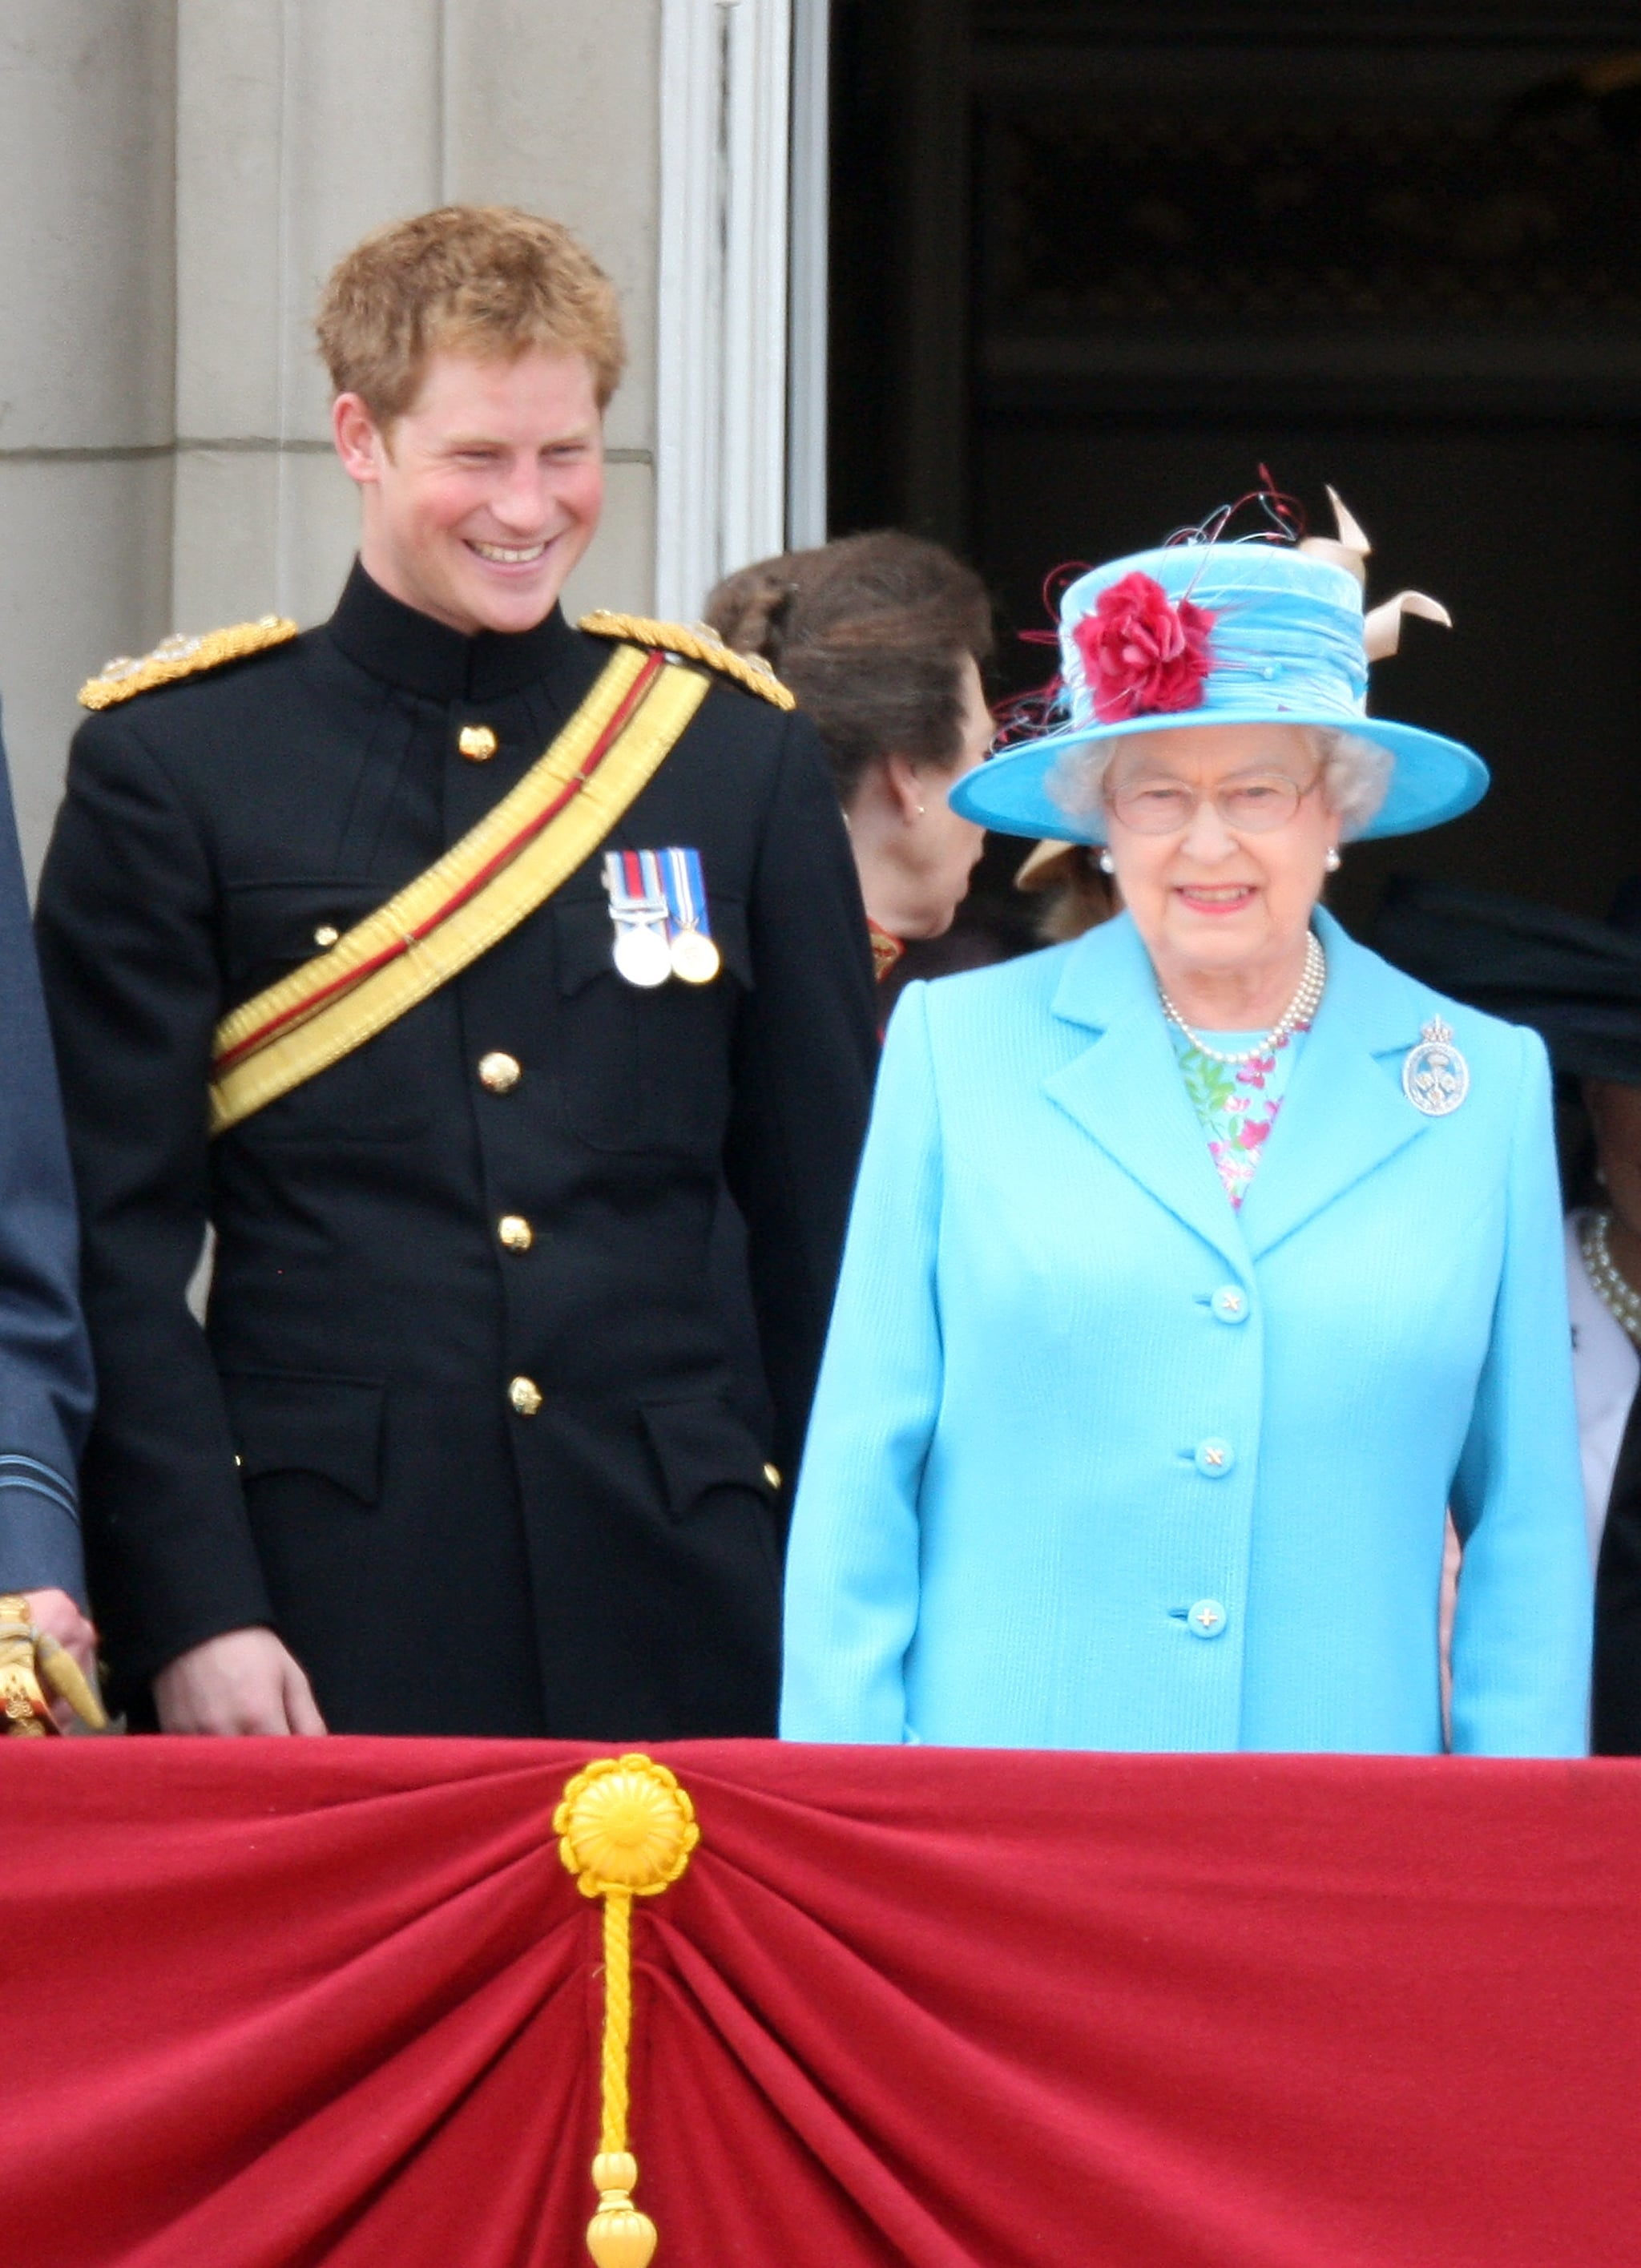 LONDON, ENGLAND - JUNE 13:  HRH Prince Harry, Laughs next to HM Queen Elizabeth II as they look out from the balcony of Buckingham Palace after the Trooping the Colour ceremony on June 13, 2009 in London, England. The ceremony of Trooping the Colour is believed to have first been performed during the reign of King Charles II. In 1748, it was decided that the parade would be used to mark the official birthday of the Sovereign. More than 600 guardsmen and cavalry make up the parade, a celebration of the Sovereign's official birthday, although the Queen's actual birthday is on 21 April.  (Photo by Chris Jackson/Getty Images)